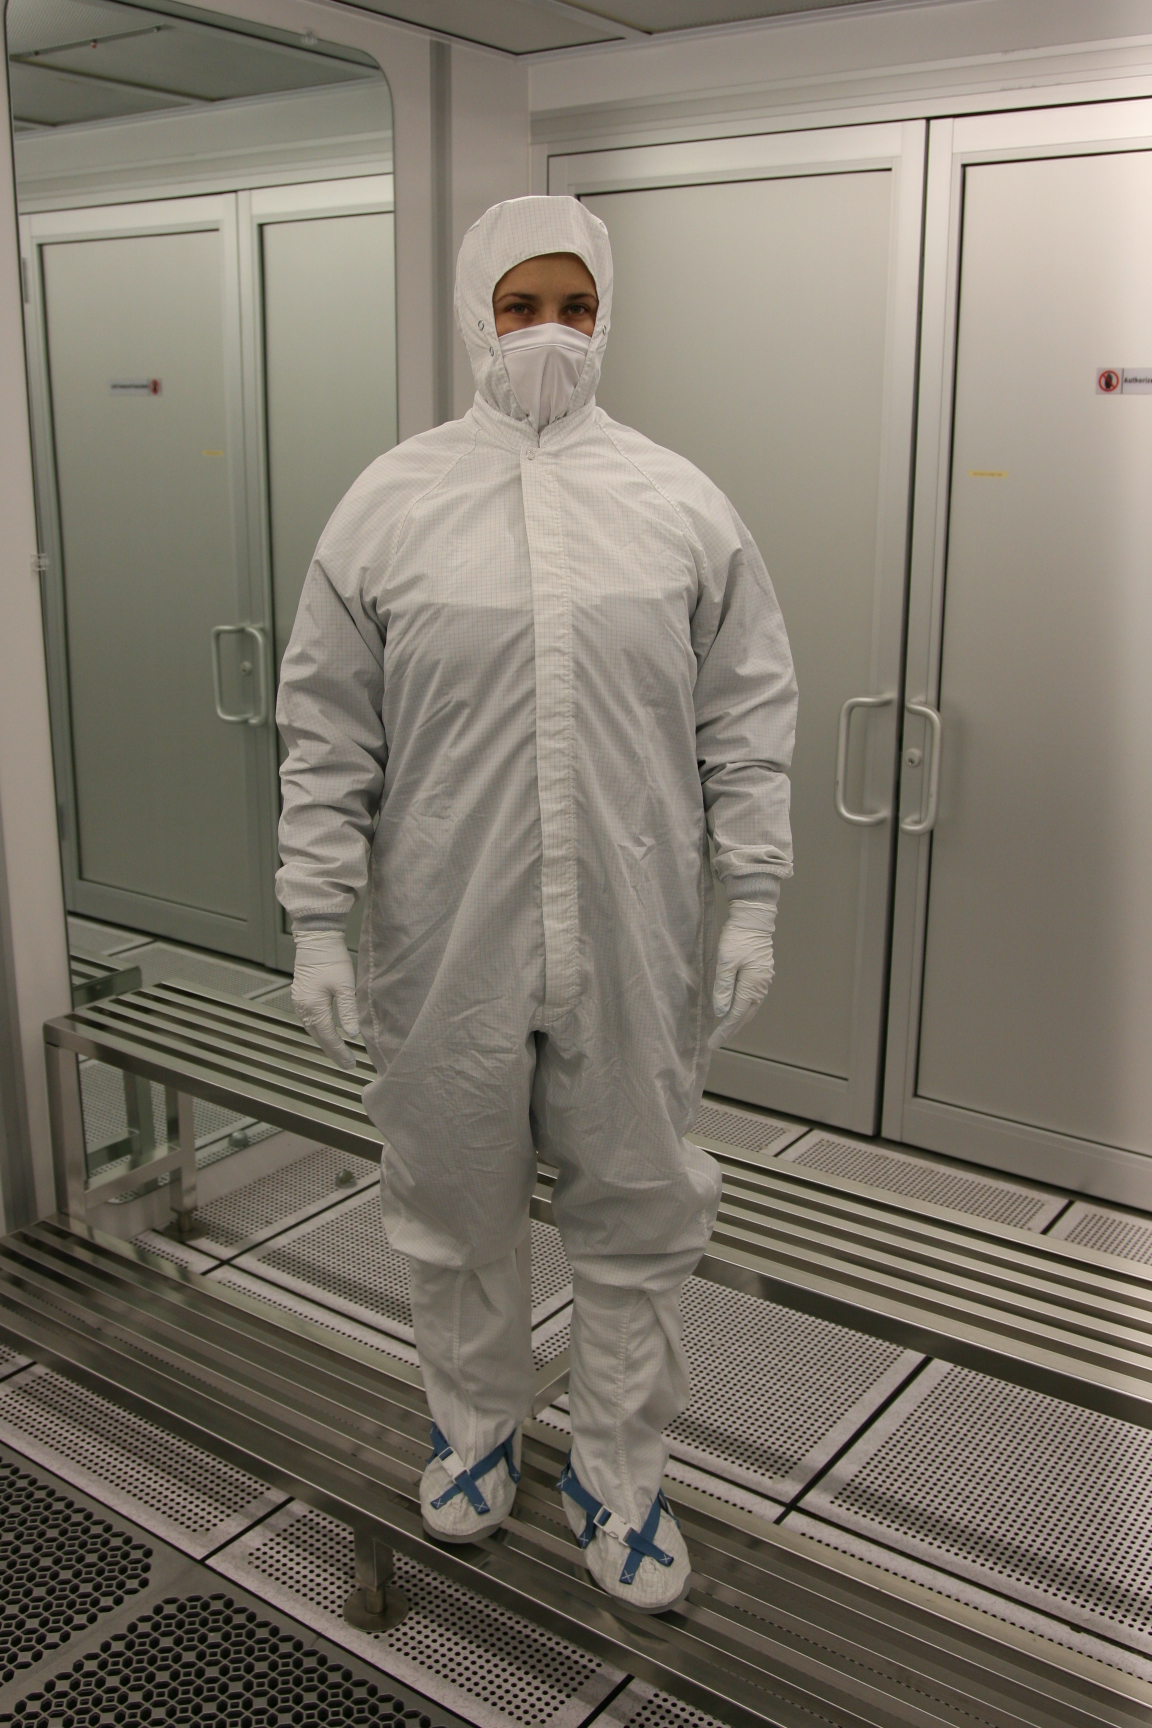 My Insurance Manager >> Cleanroom Gowns and Suits - AB5800 ESD | Prudential ...